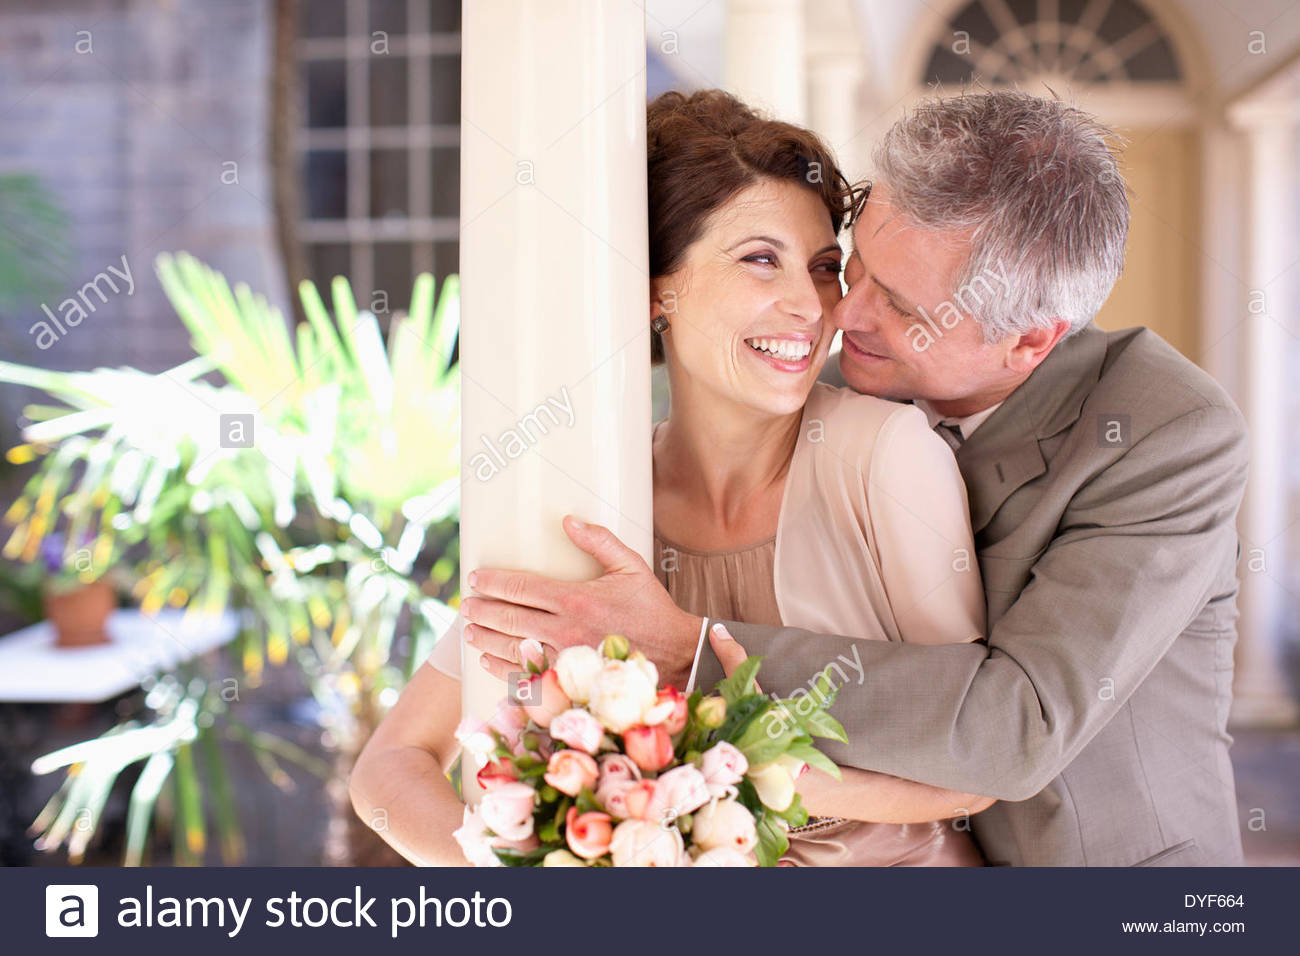 Mature bride and groom hugging - Stock Image